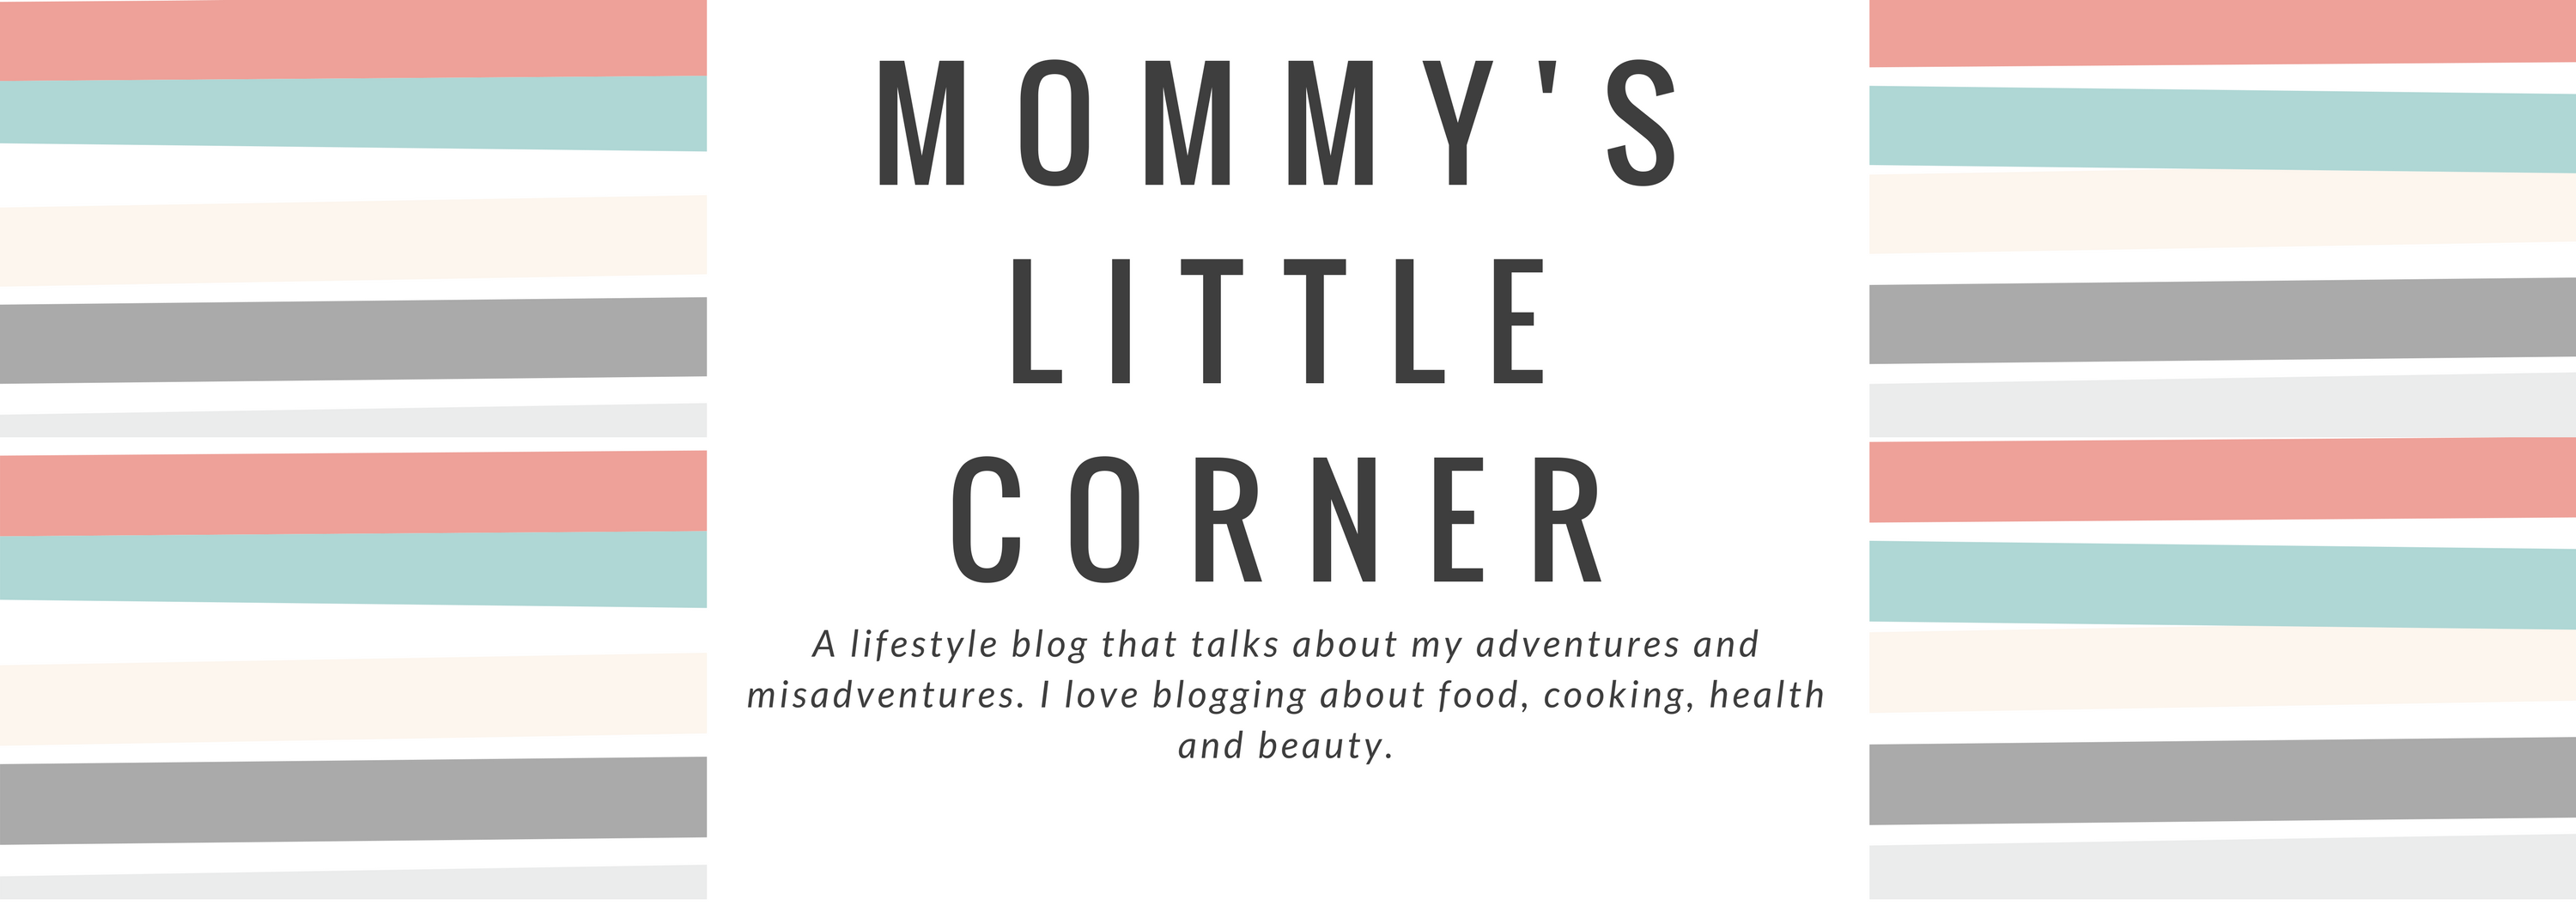 Mommy's Little Corner